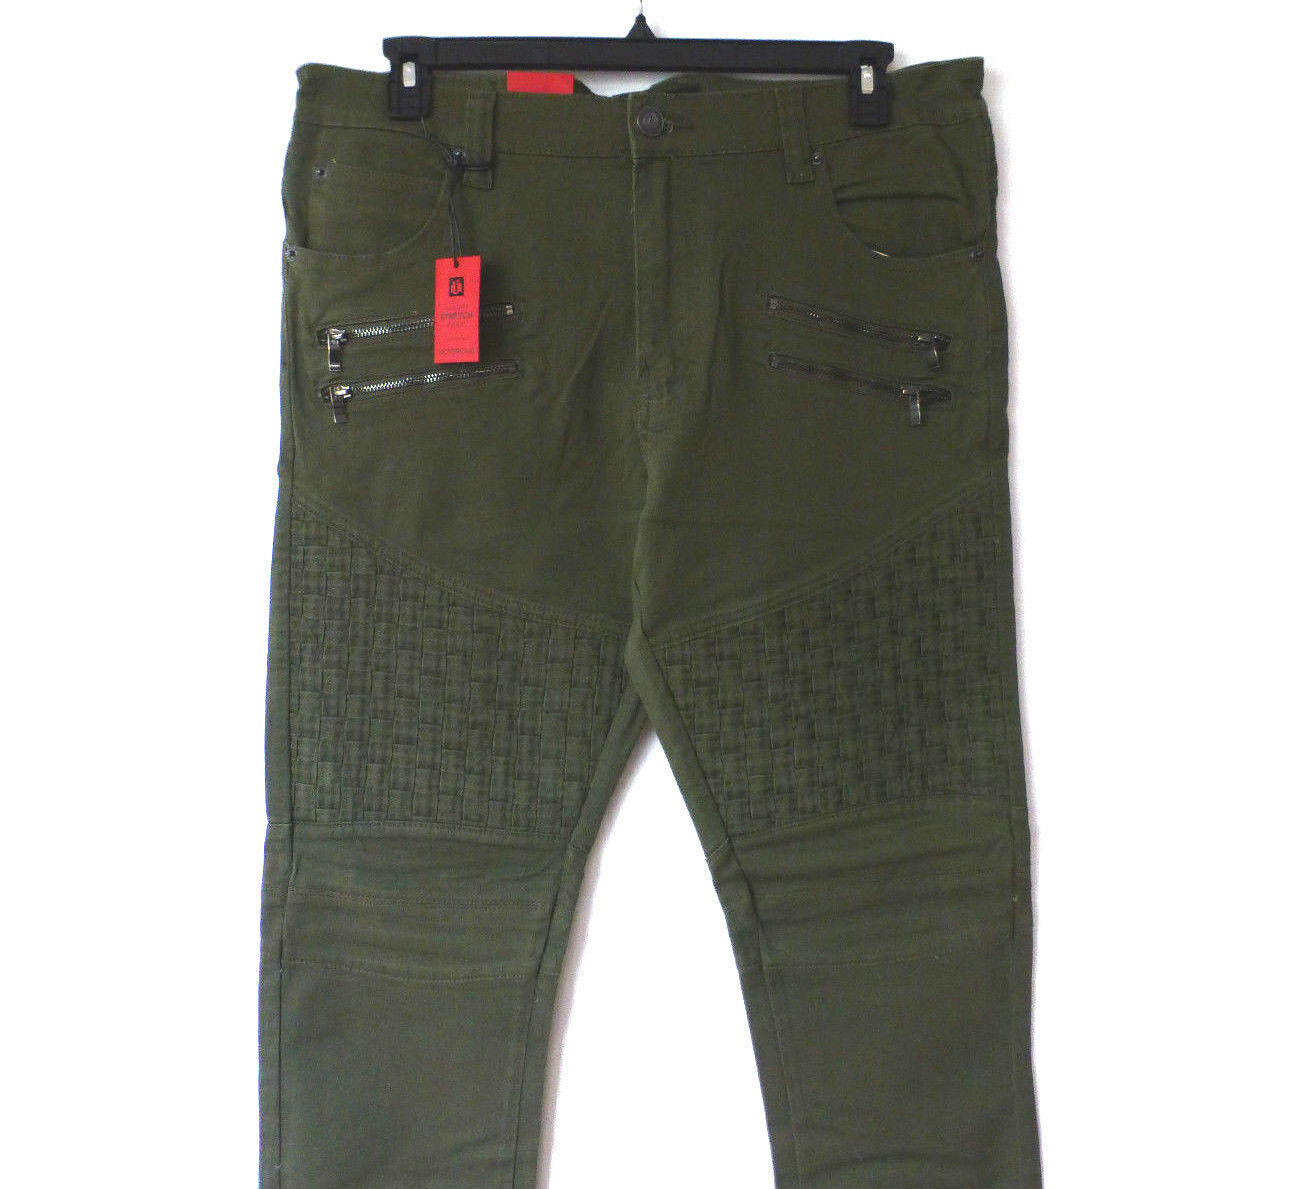 Victorious Jeans Mens 32X30 Olive Green Slim Fit Stretch Basket Weave Jeans New